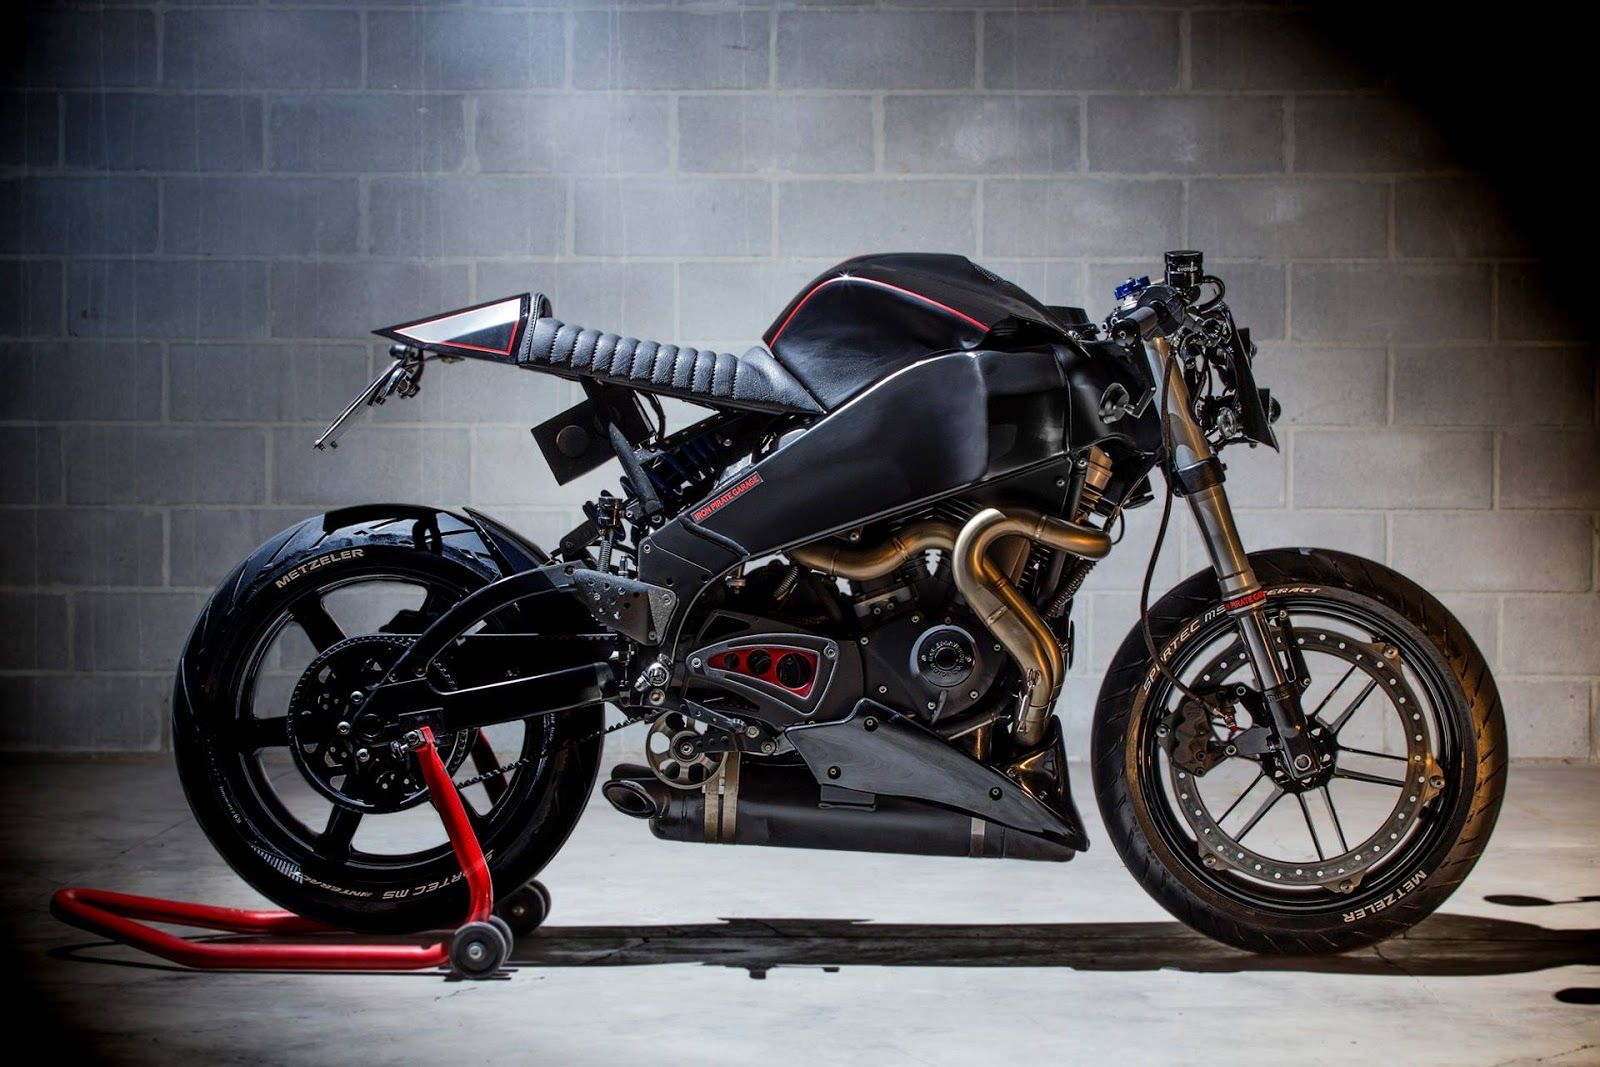 rocketgarage cafe racer: buell xb pirate | motorcycle emptiness